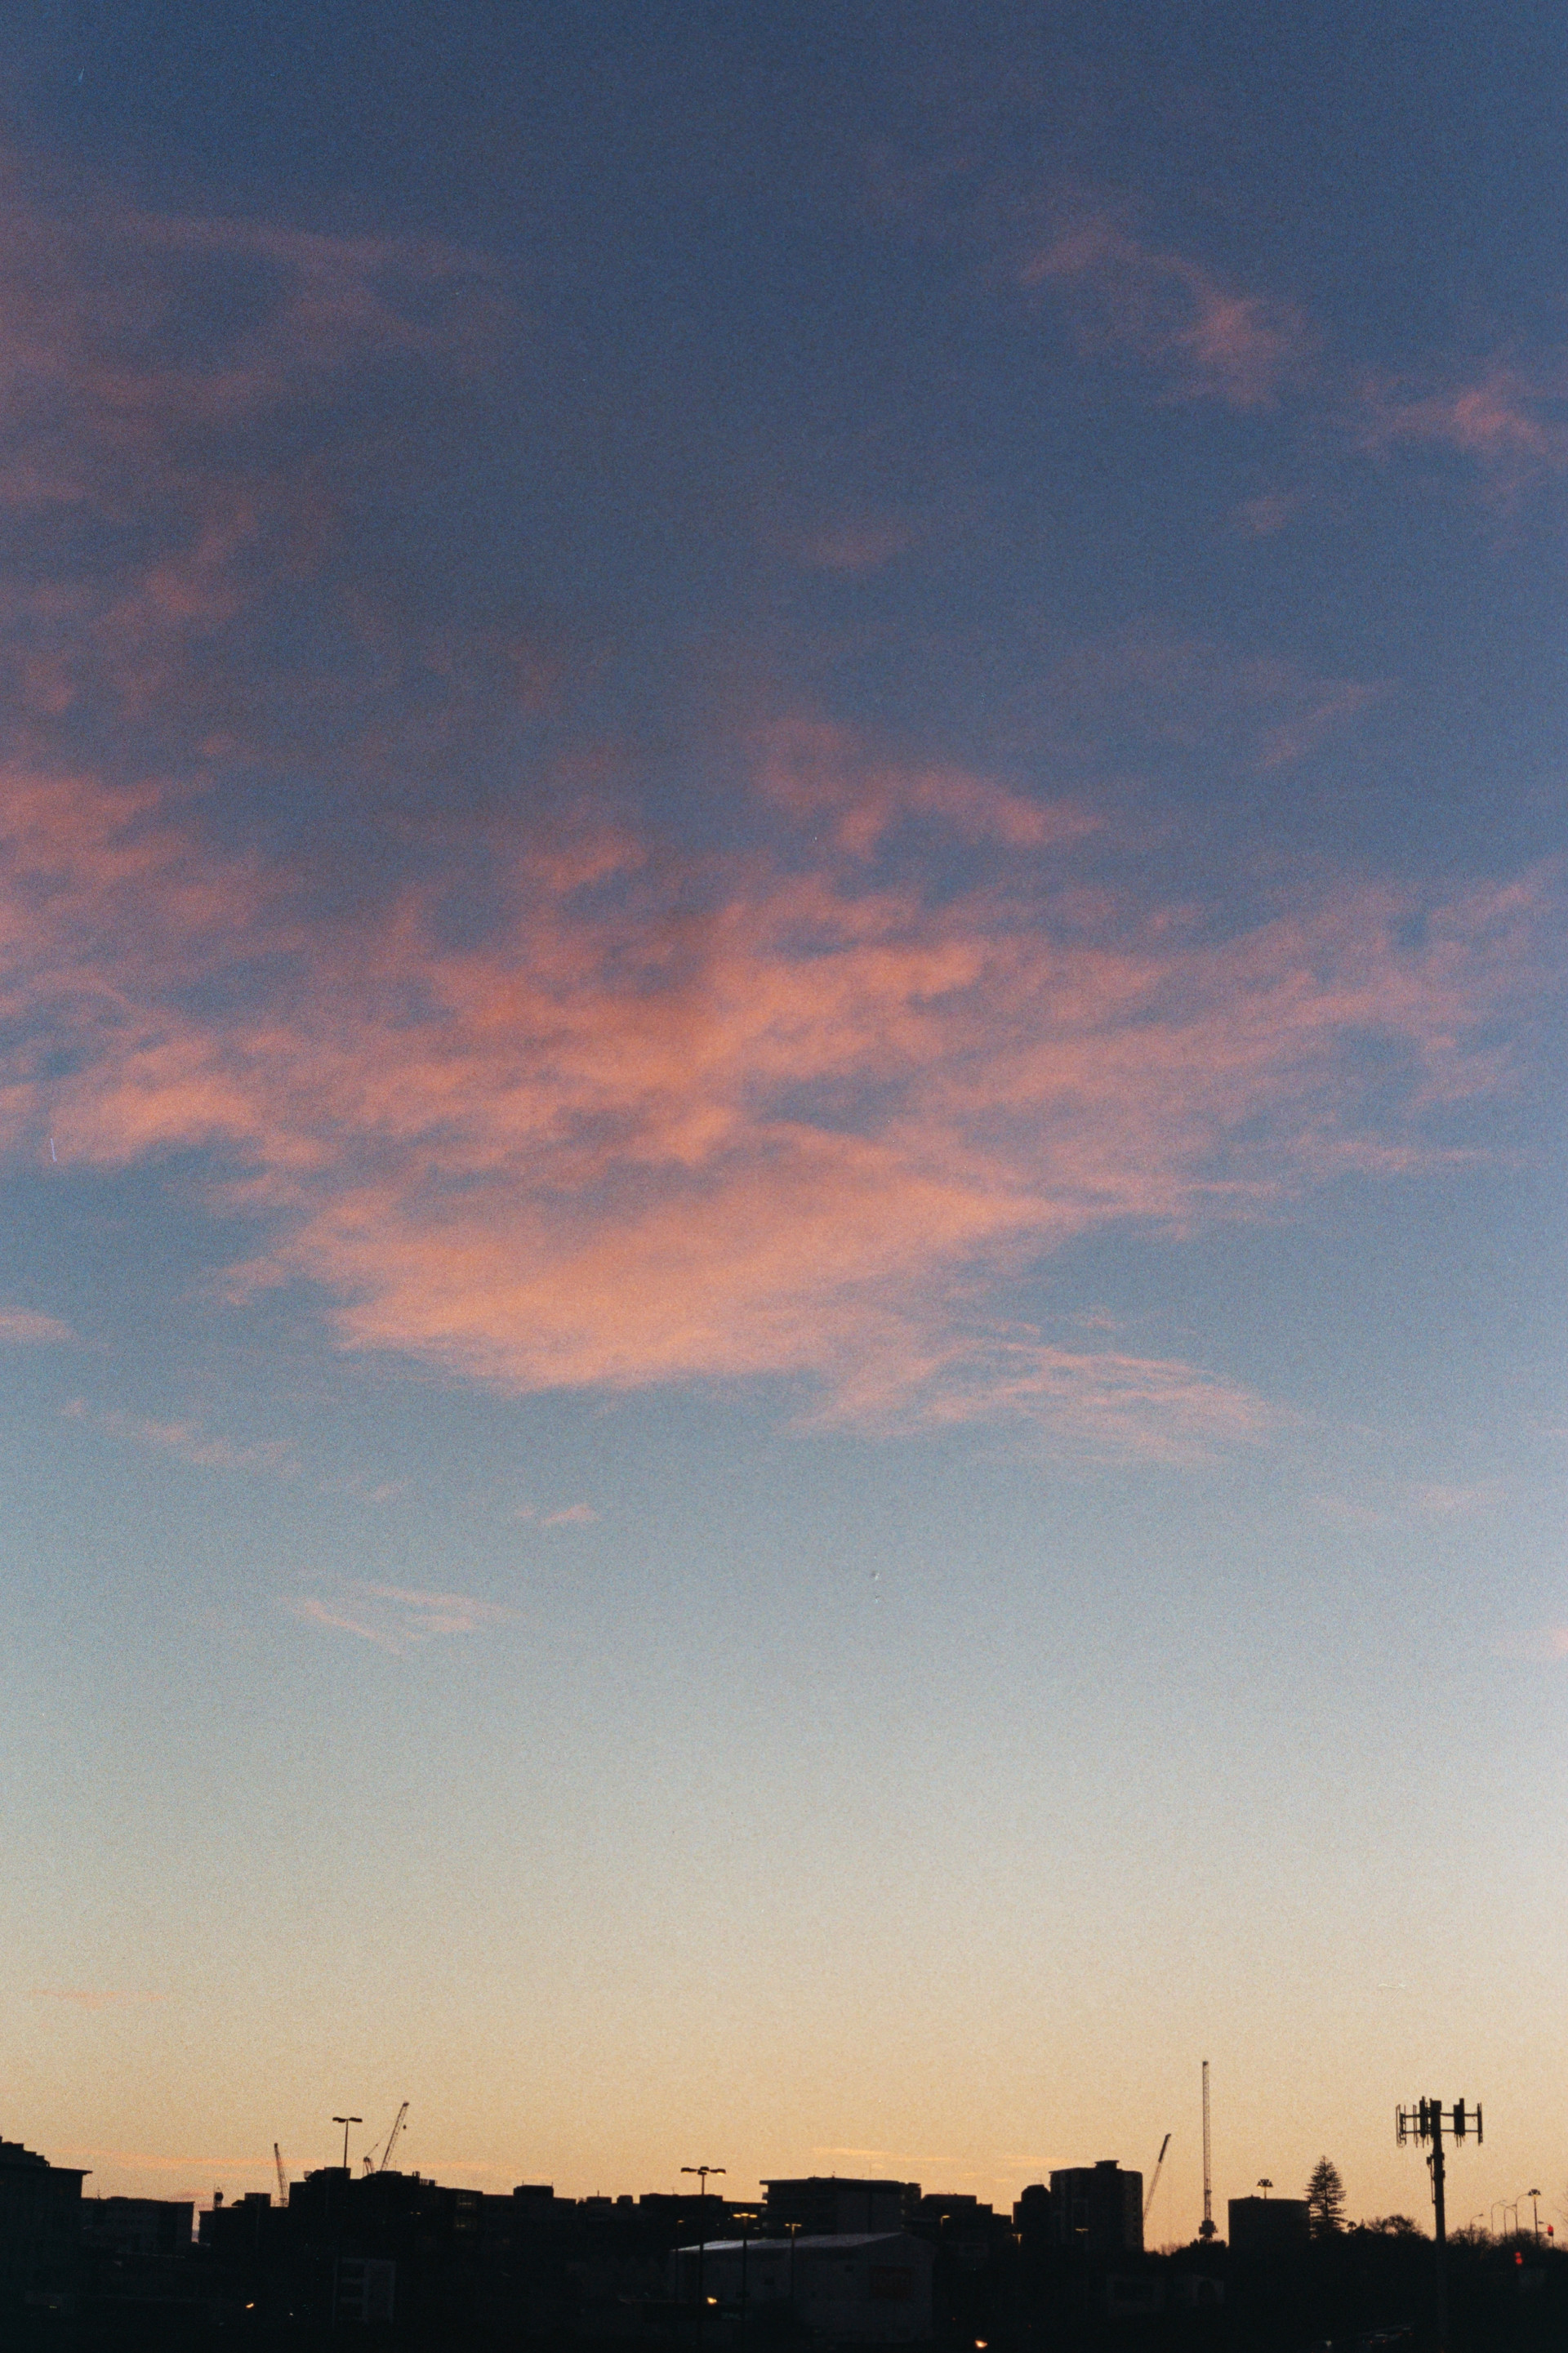 canon ae1, 50mm f1.8, agfaphoto vista plus 200